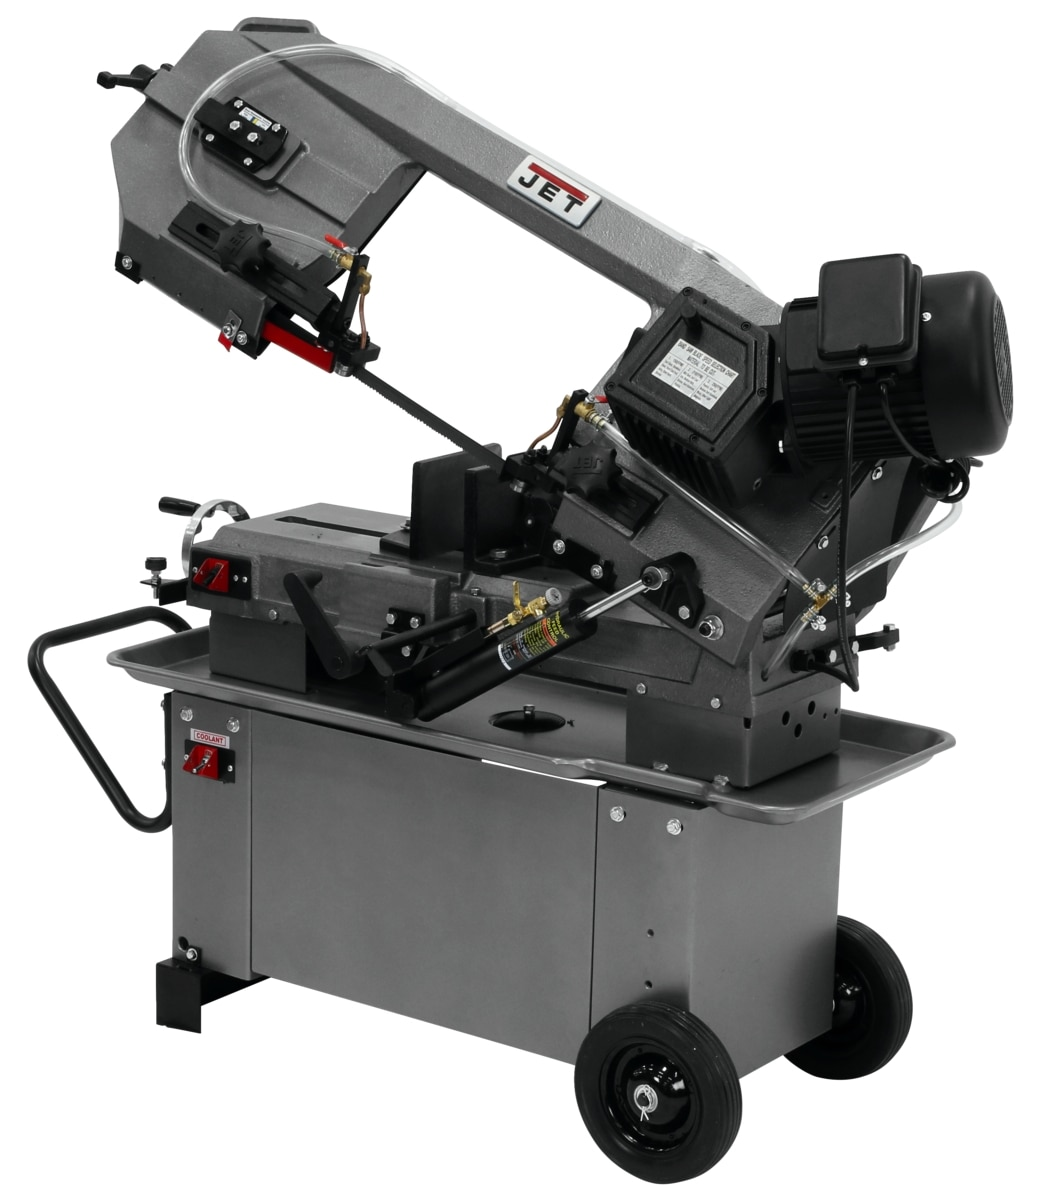 "HBS-812G, 8"" x 12"" Horizontal/Vertical Geared Head Bandsaw"